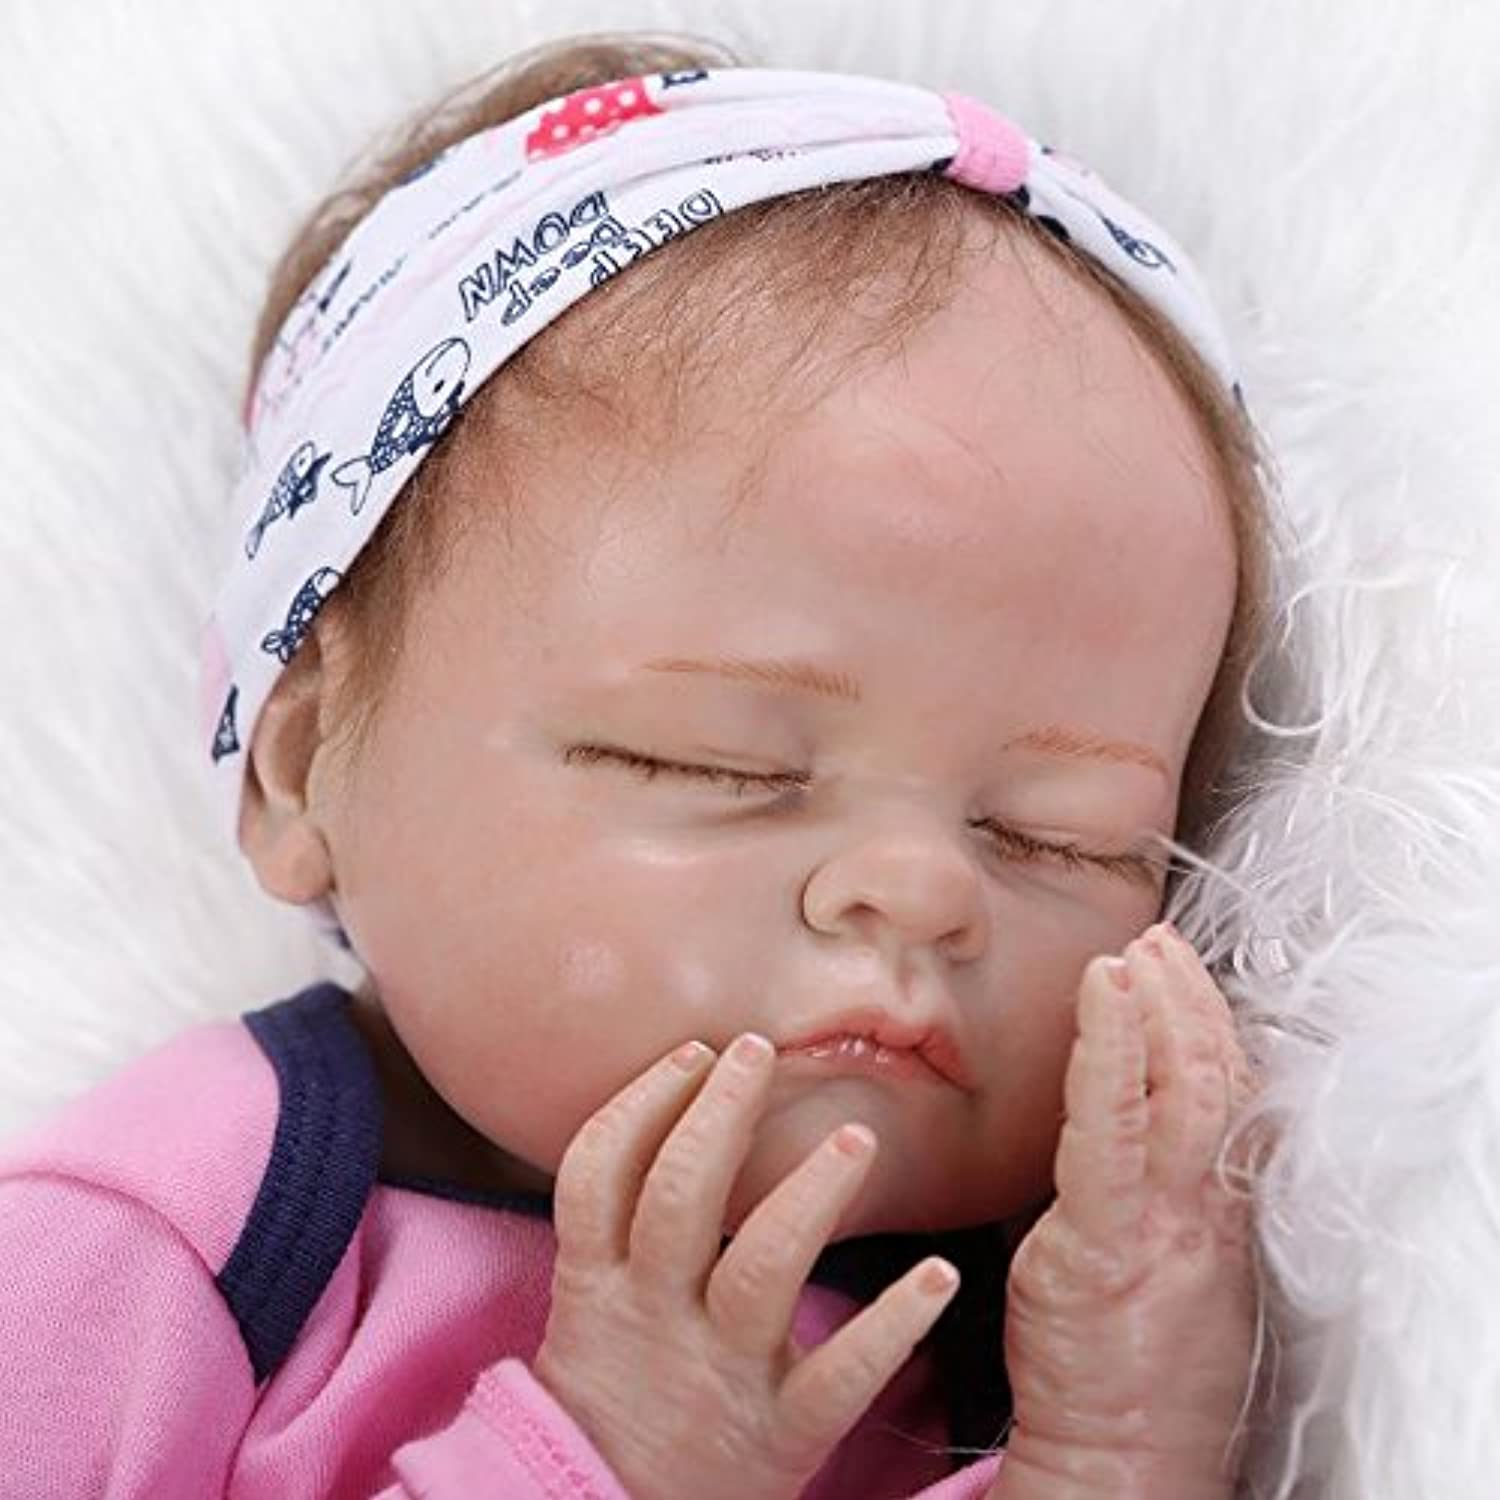 Realistic Reborn Girls Real Looking Lifelikeベビー人形55 cm Washable Toys Gift for Toddlers